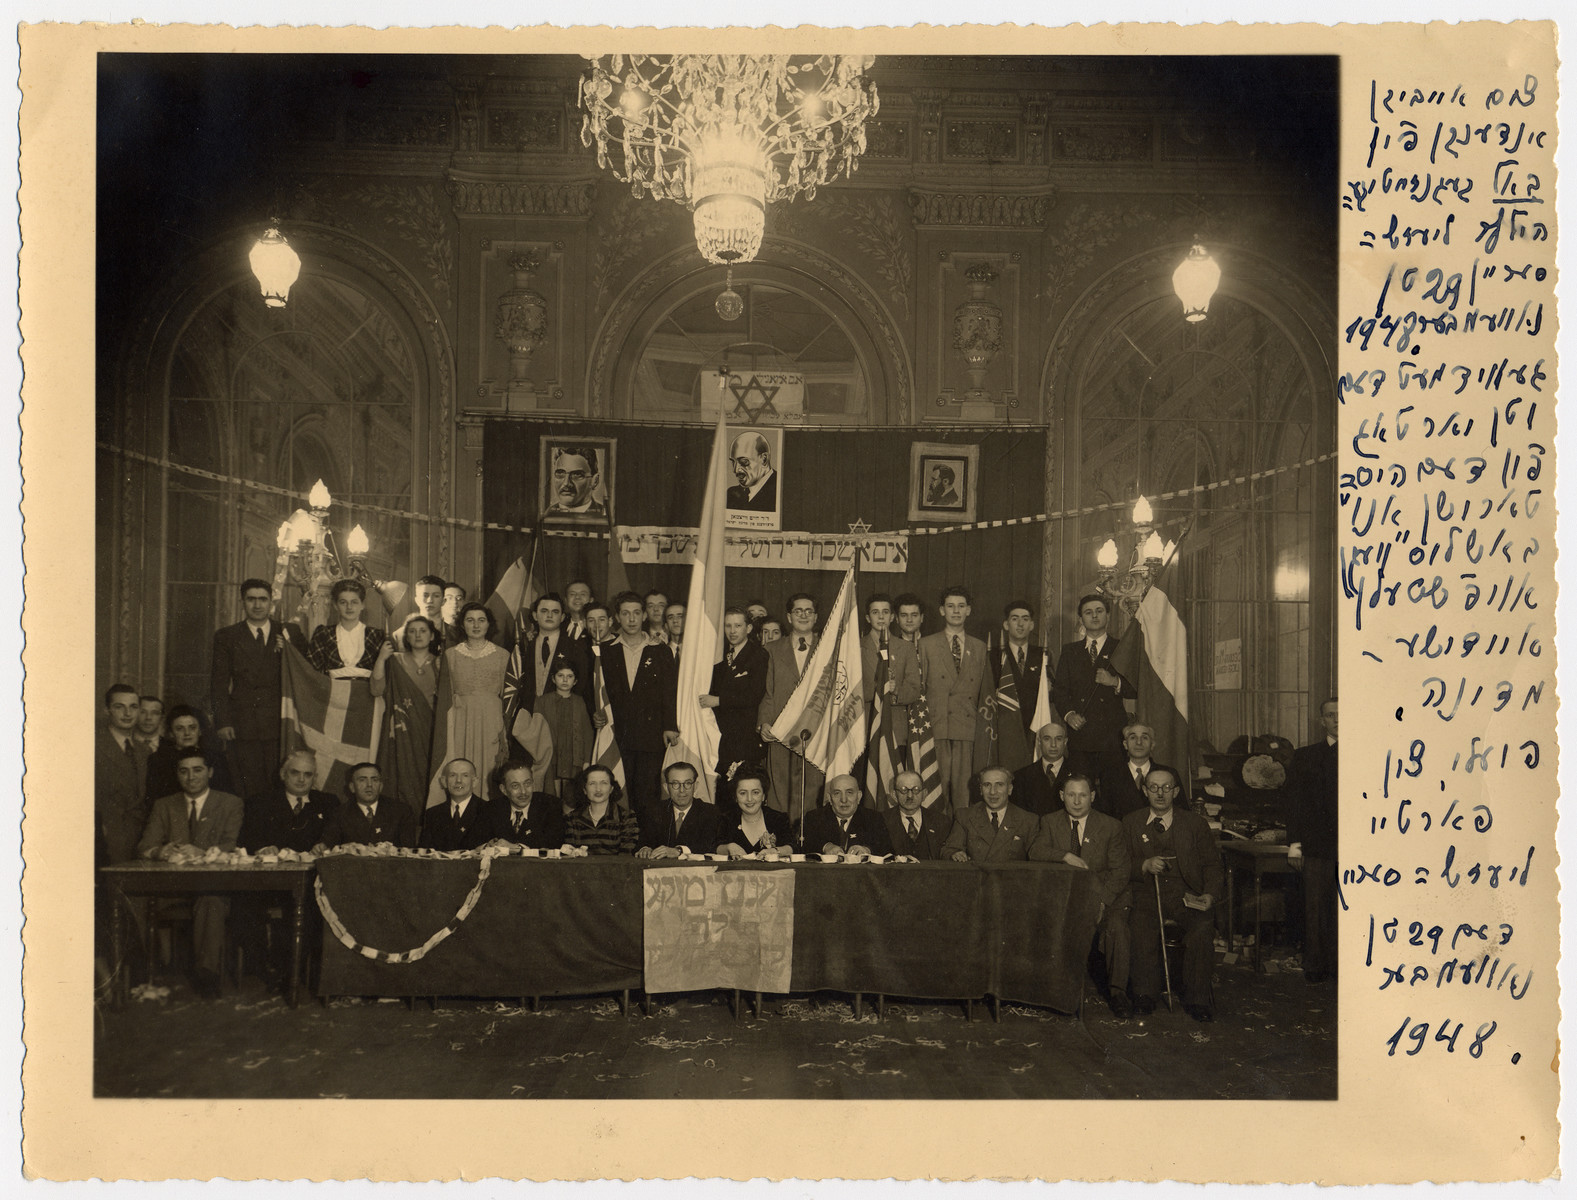 Meeting of the left-wing Zionist movement, Poale Zion, in Liege Belgium gathers to celebrate the first anniversary of the U.N. vote partitioning Palestine and granting a Jewish state.  Fela Perelman is seated in the front row center.